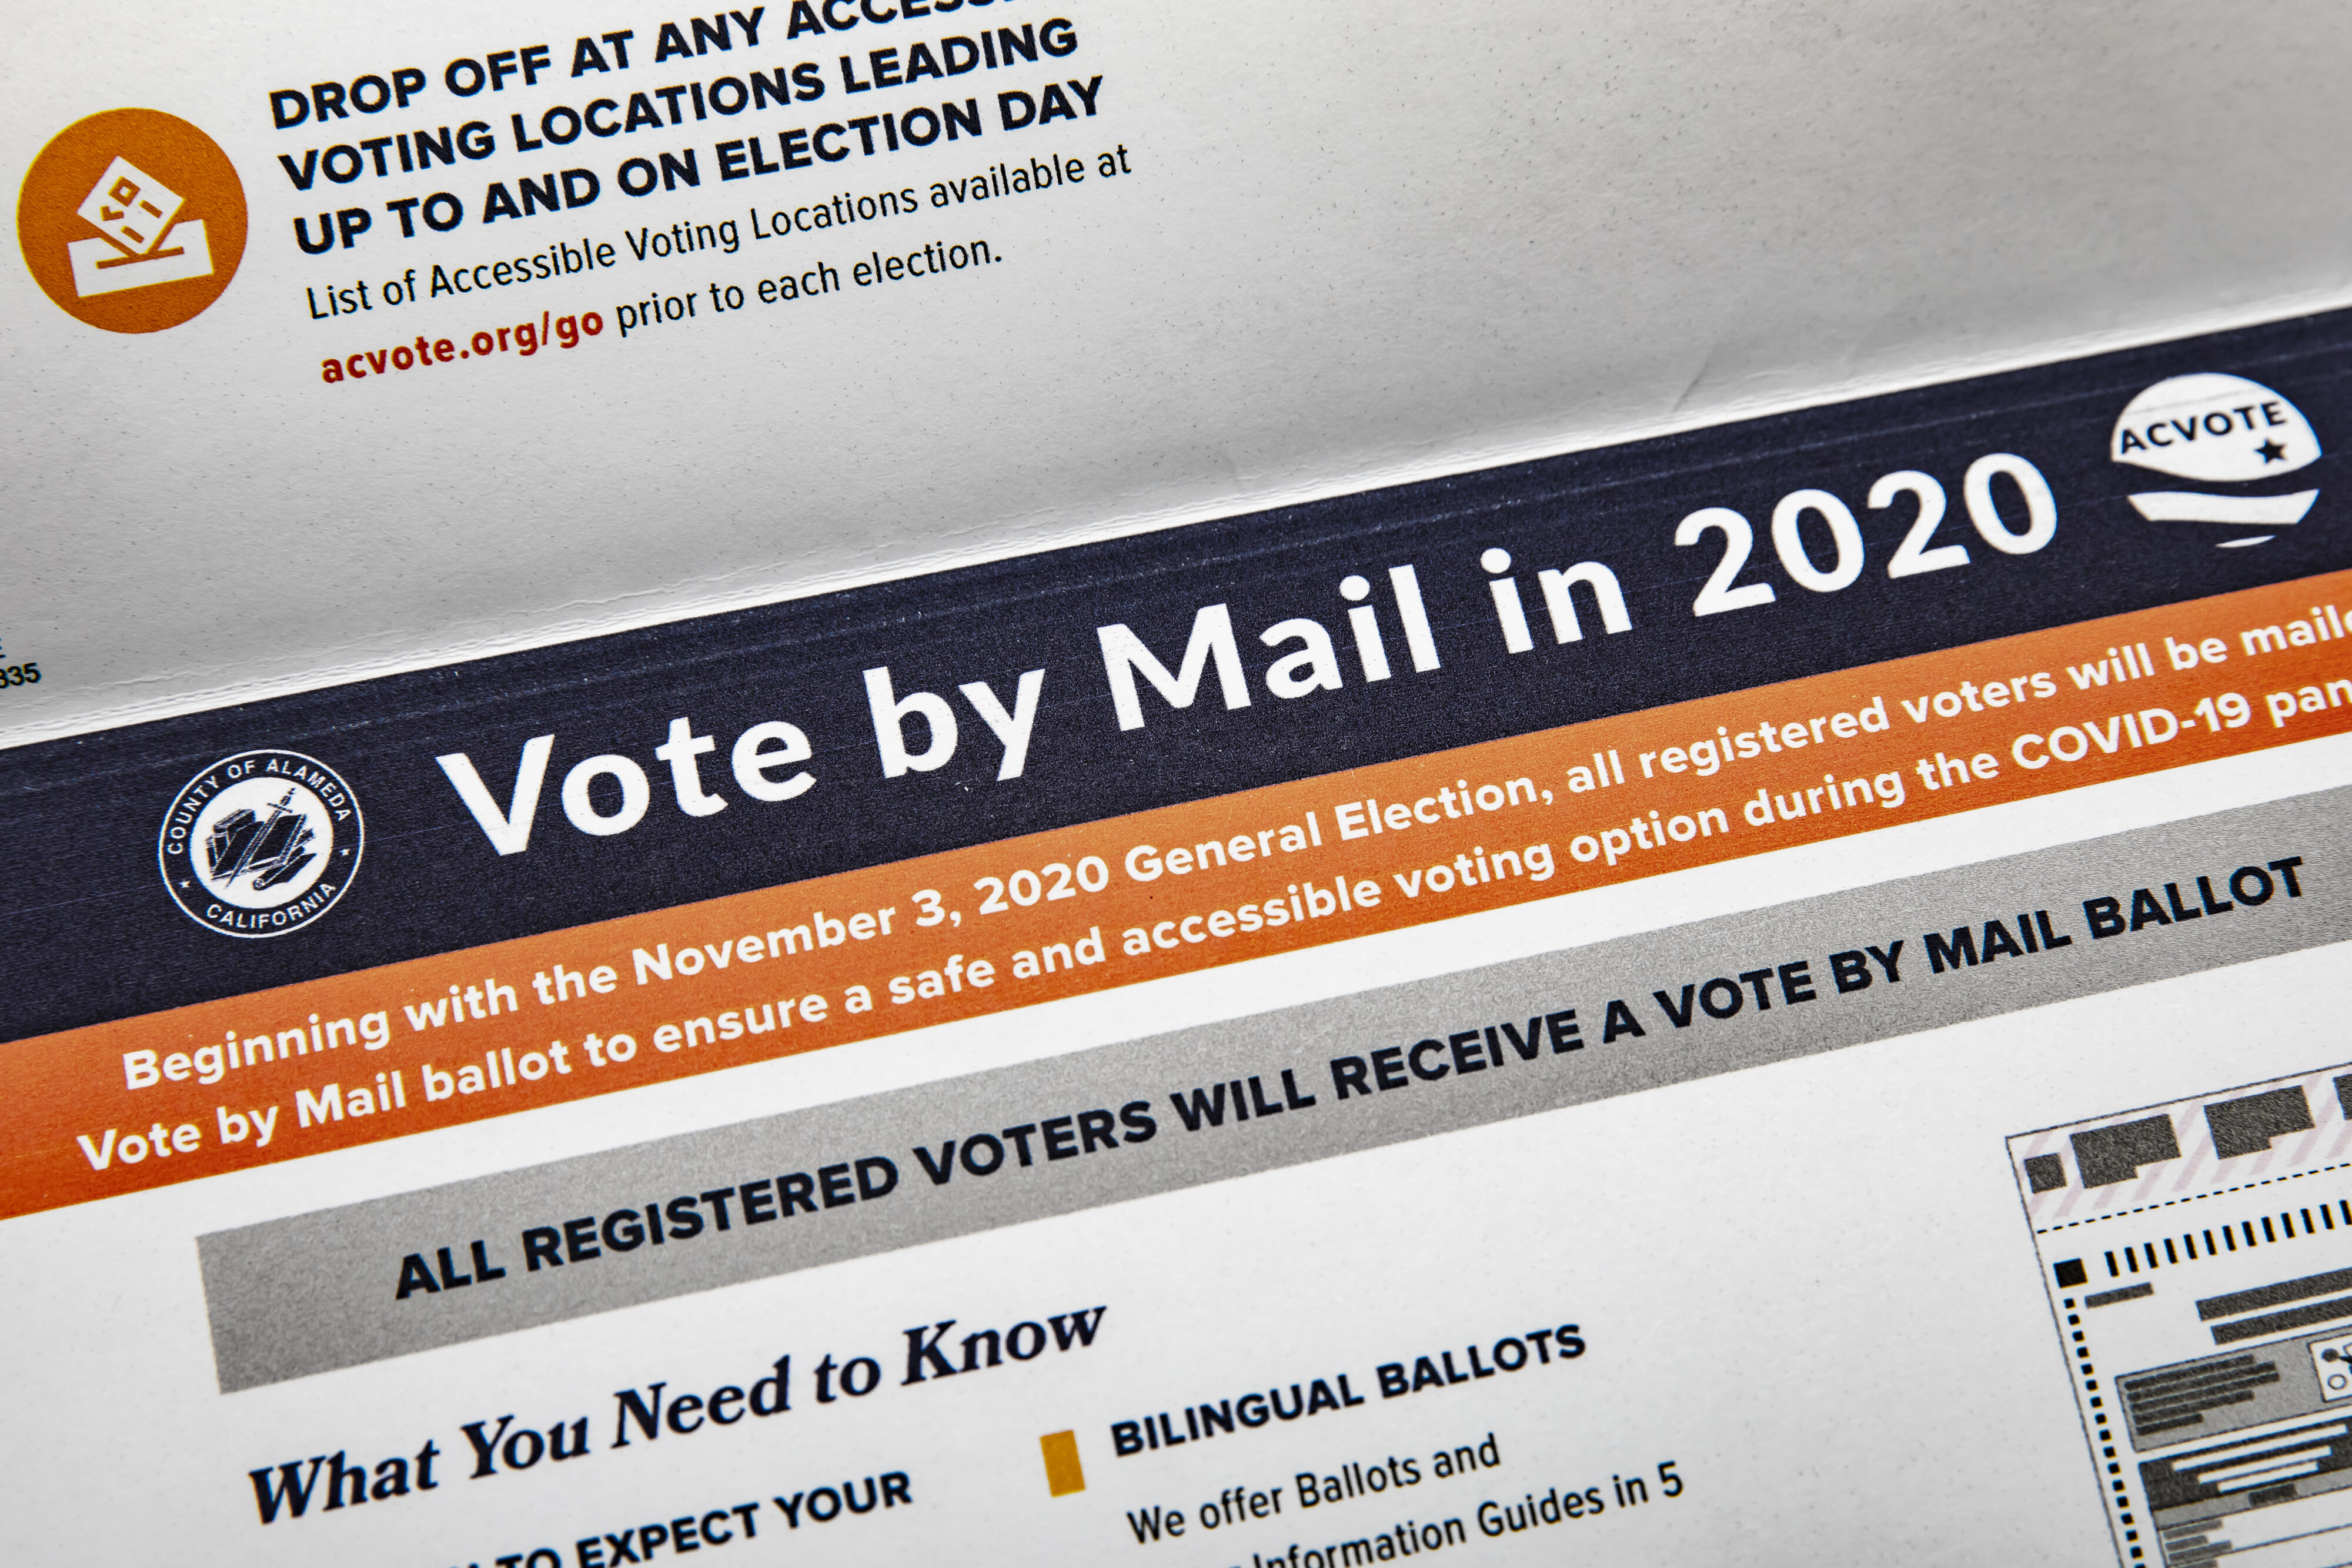 A vote-by-mail ballot